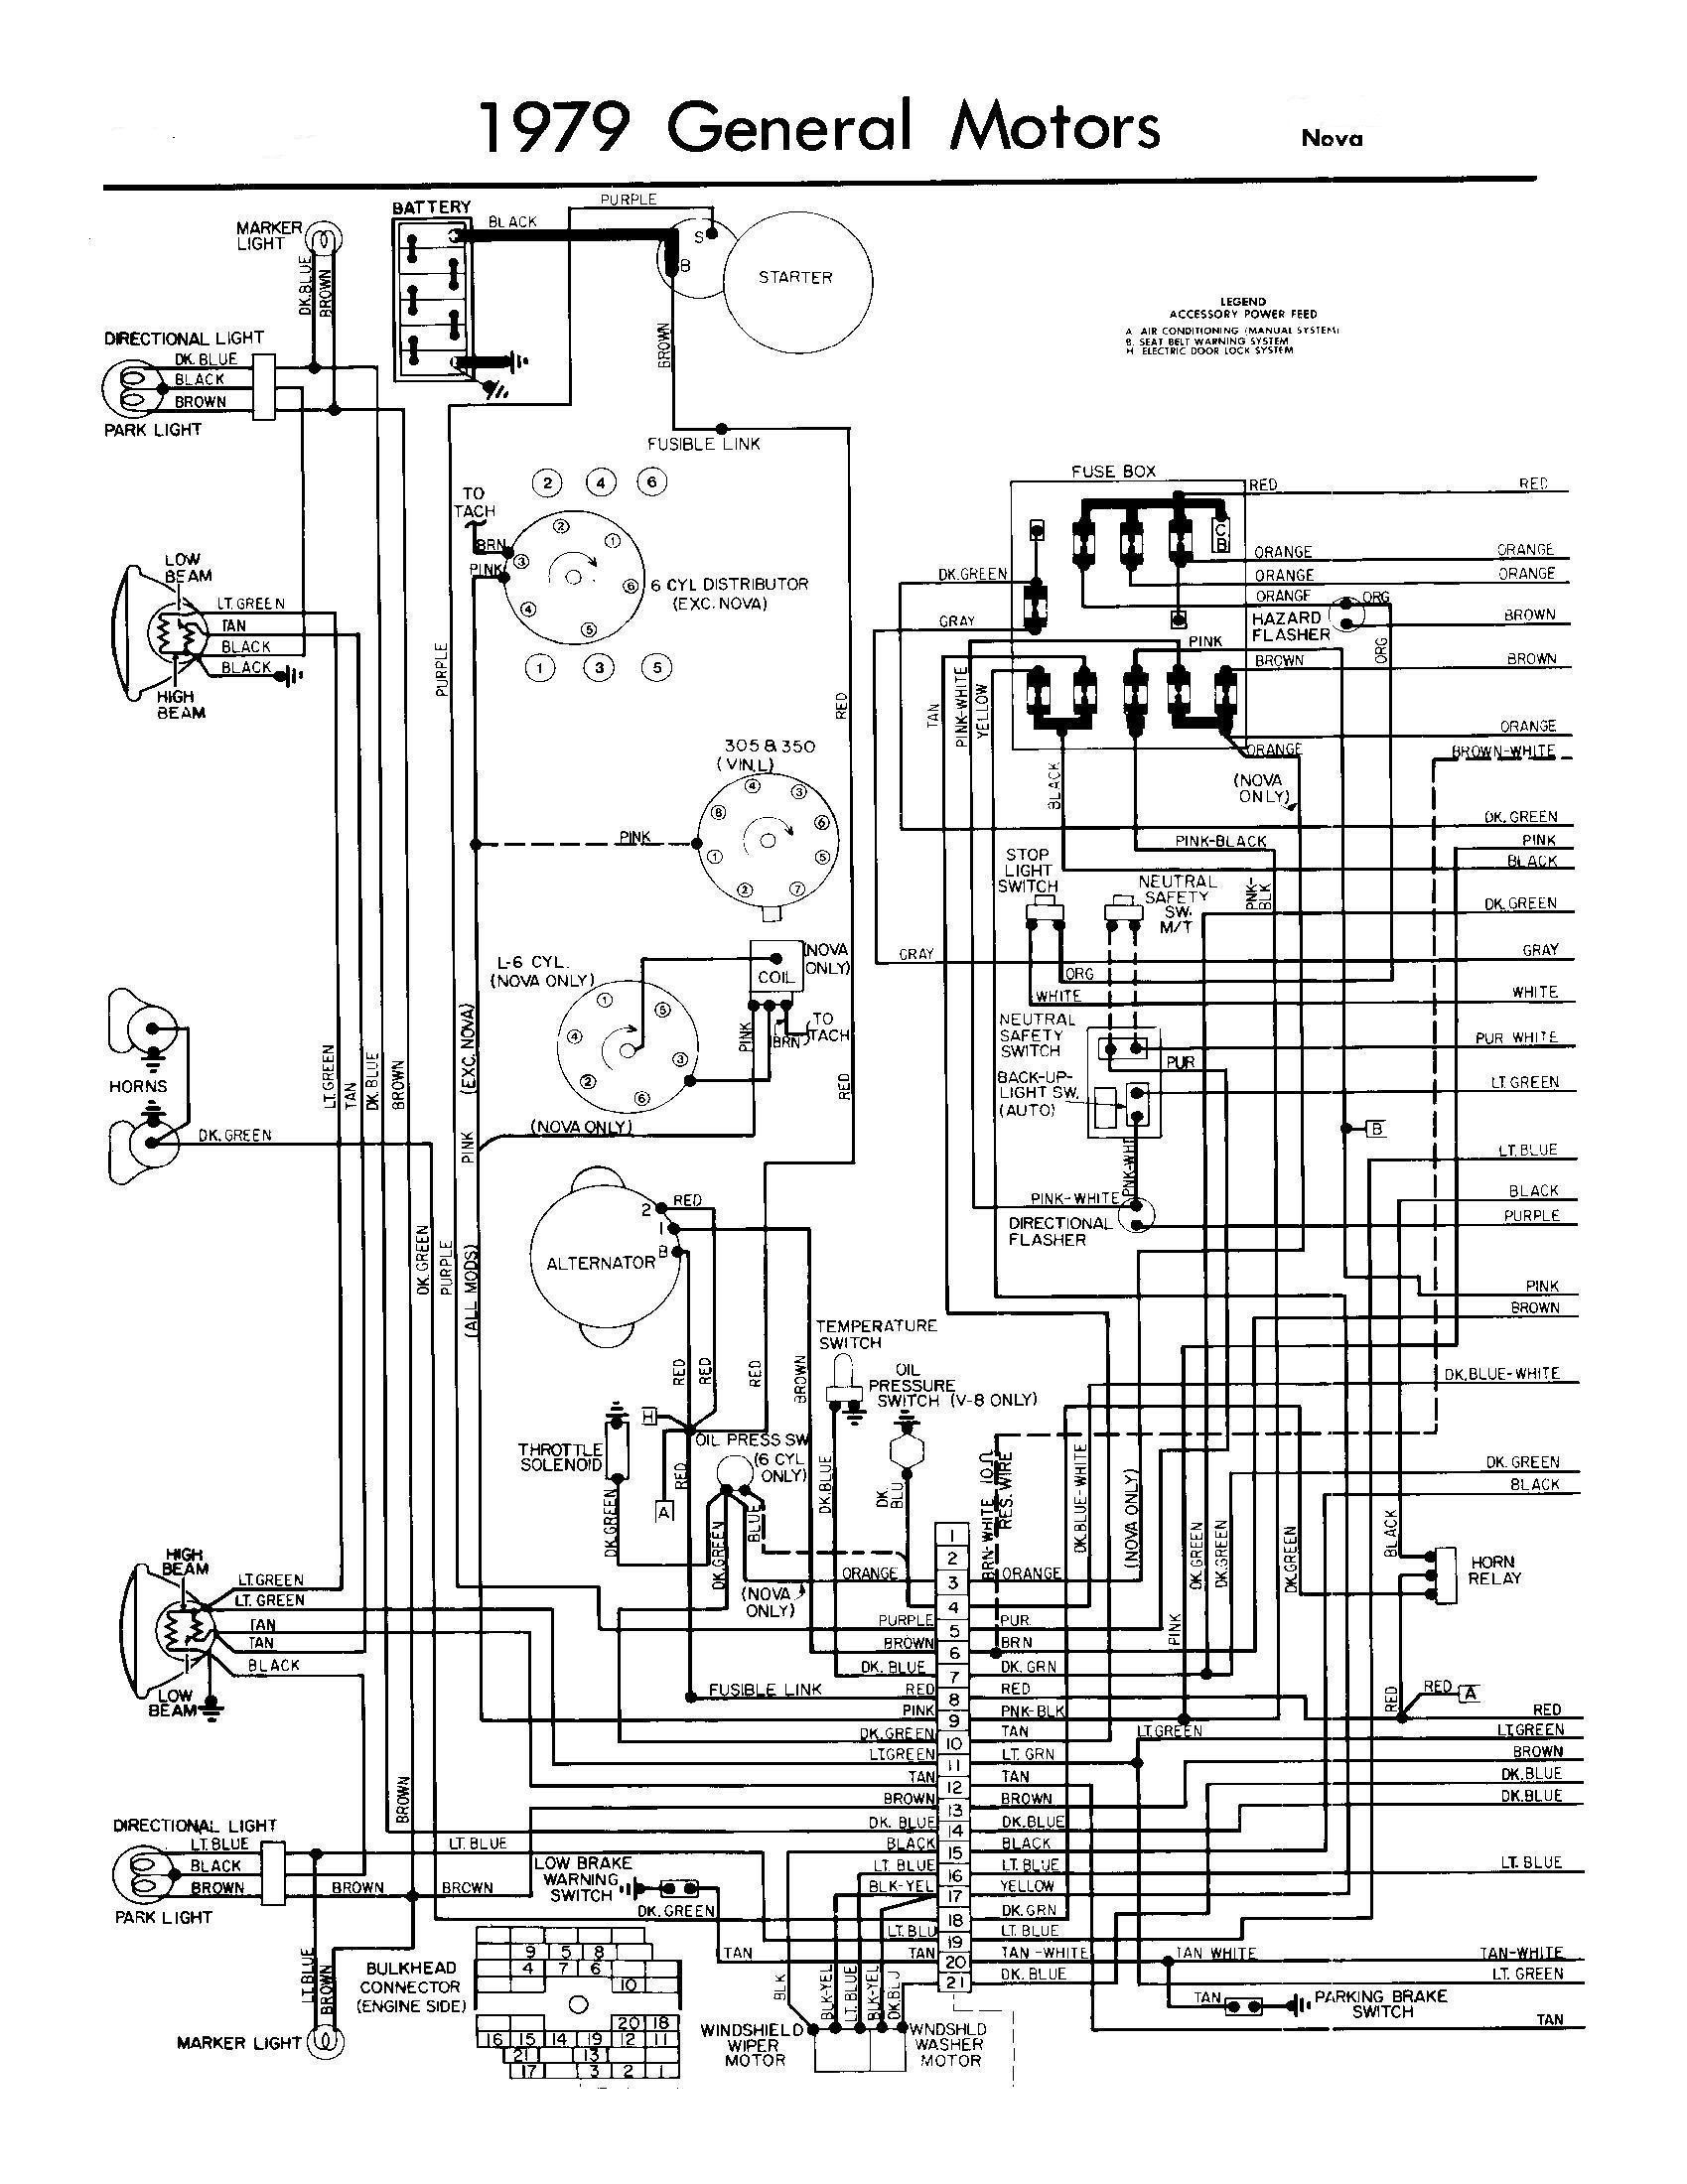 68 chevy truck wiring diagrams for free free download wiring diagram rh abetter pw